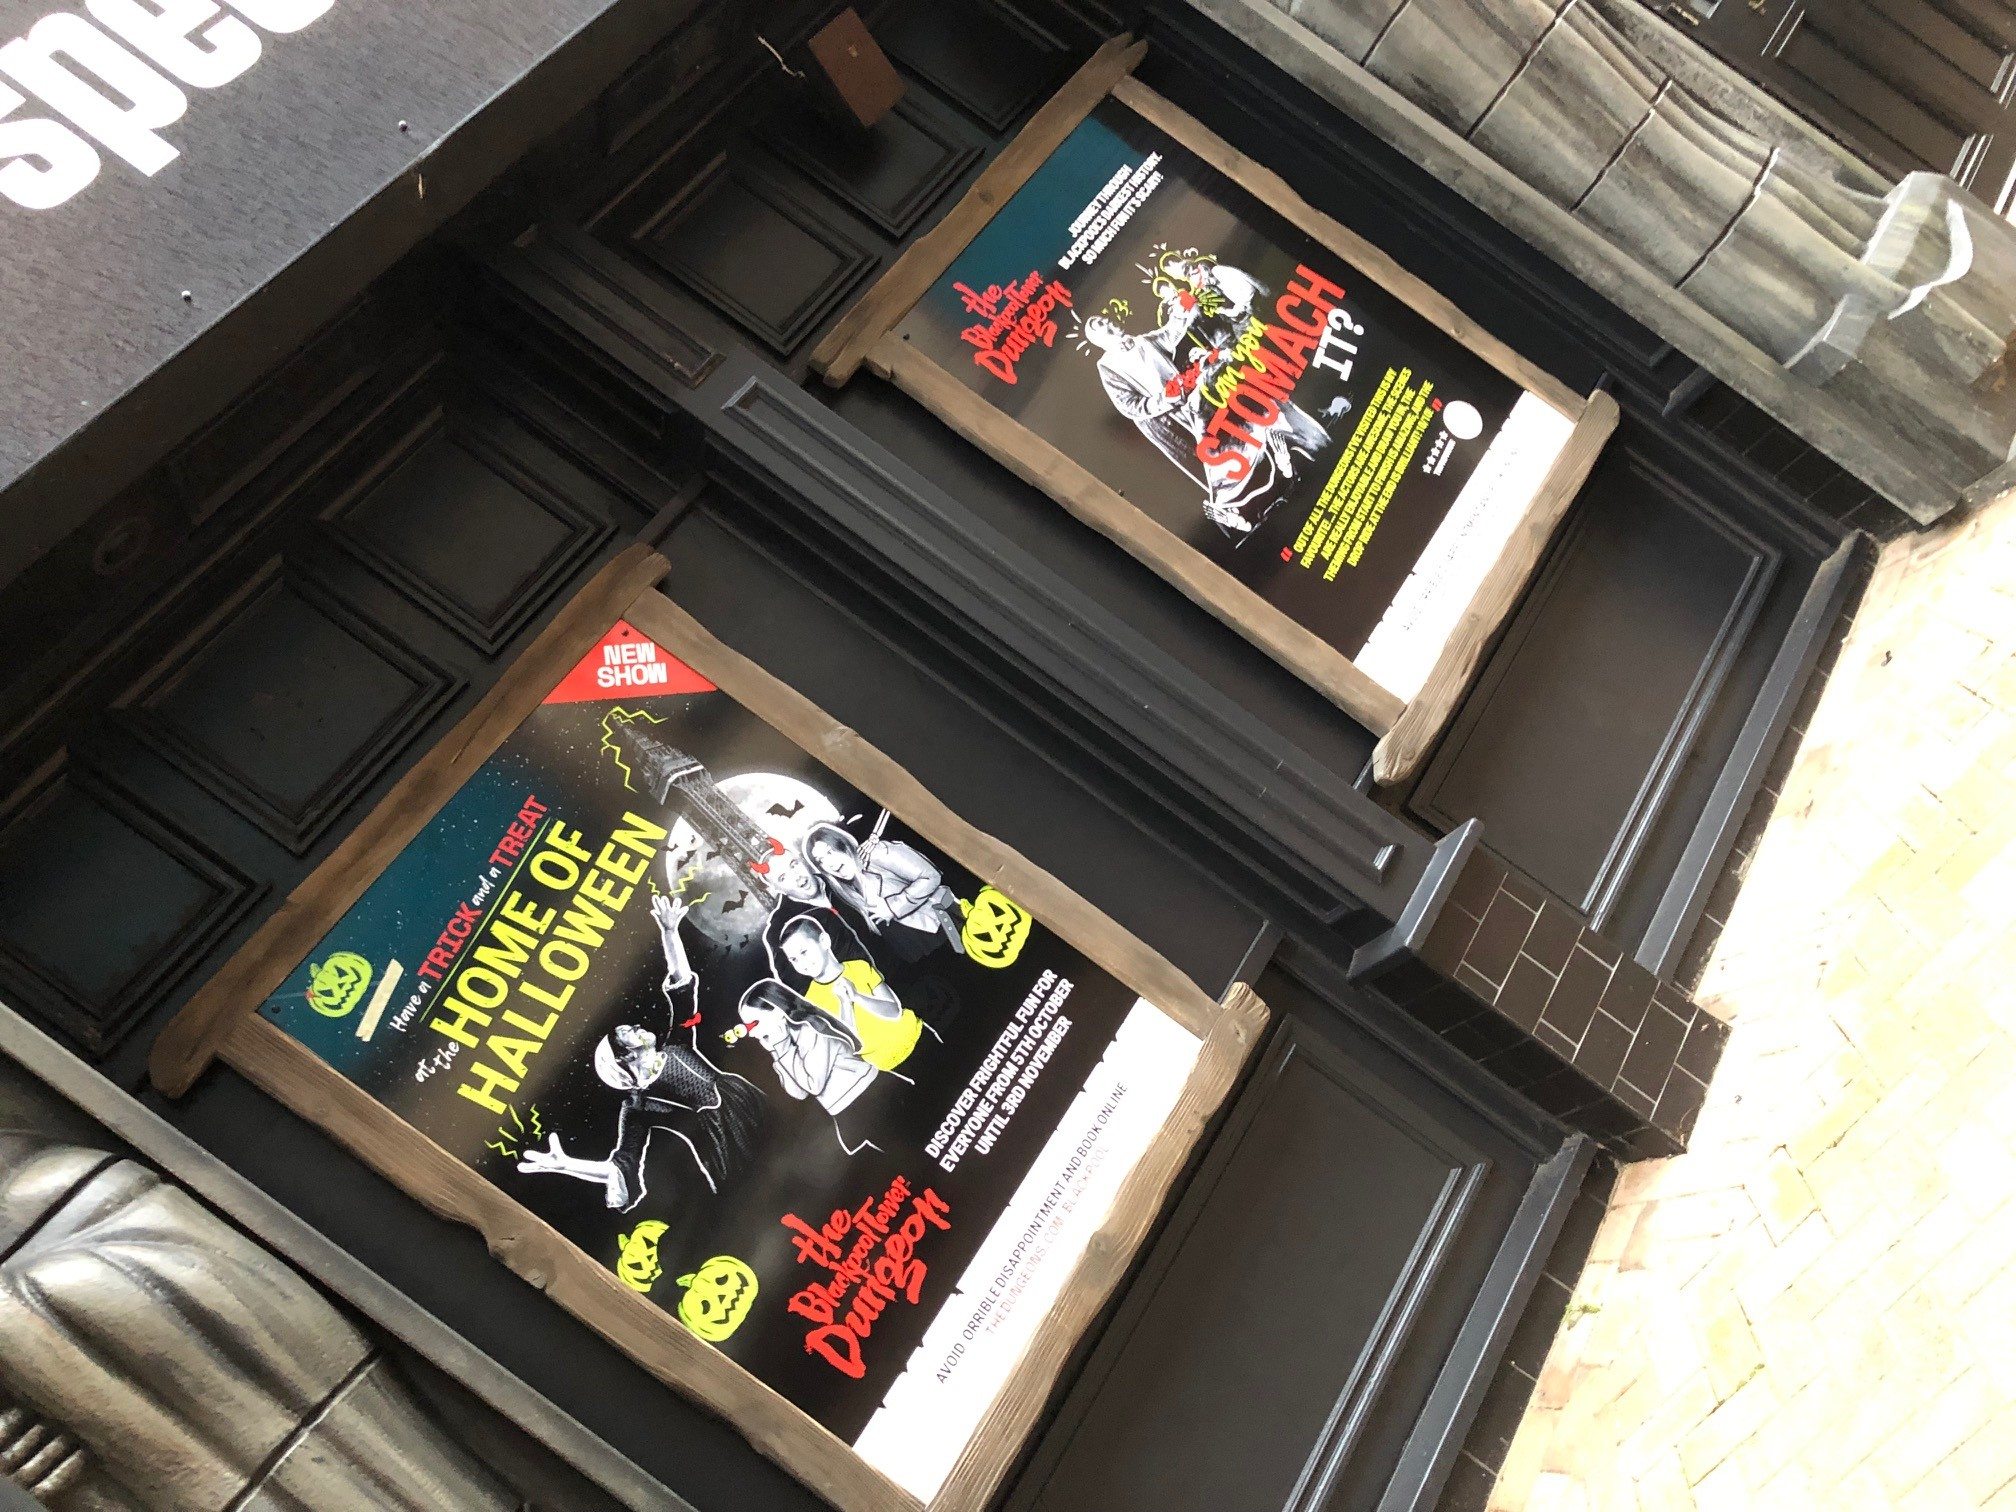 alupanel signs blackpool tower dungeons halloween